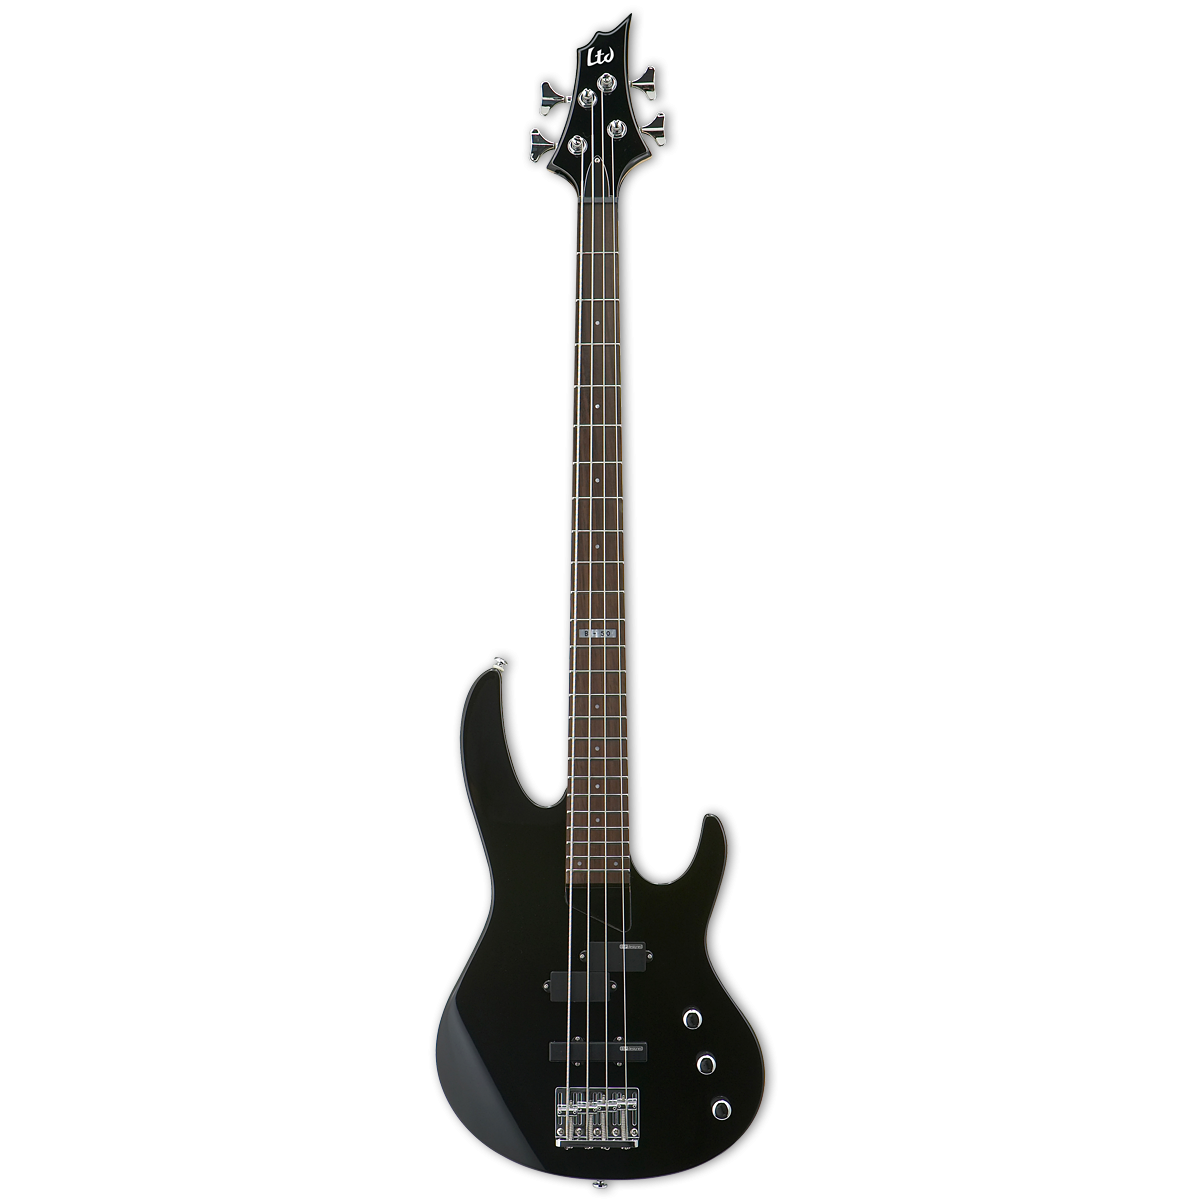 esp ltd b50 bass guitar black bass guitars bass. Black Bedroom Furniture Sets. Home Design Ideas